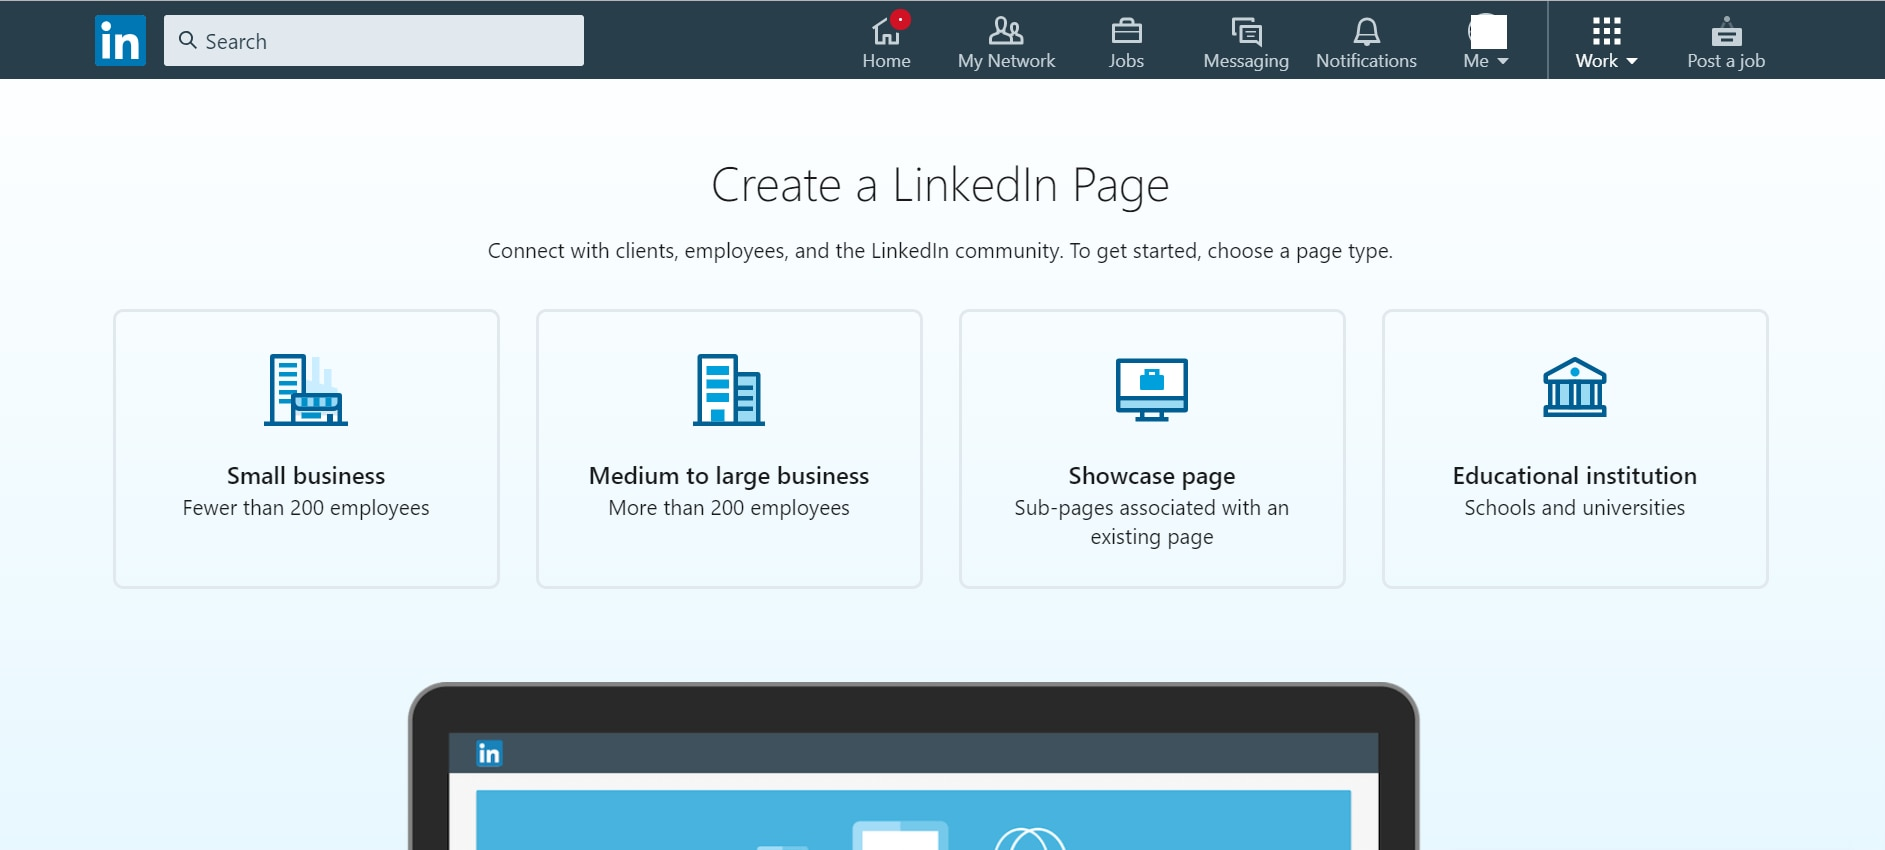 Next step in how to create a company page on LinkedIn is to choose a page type